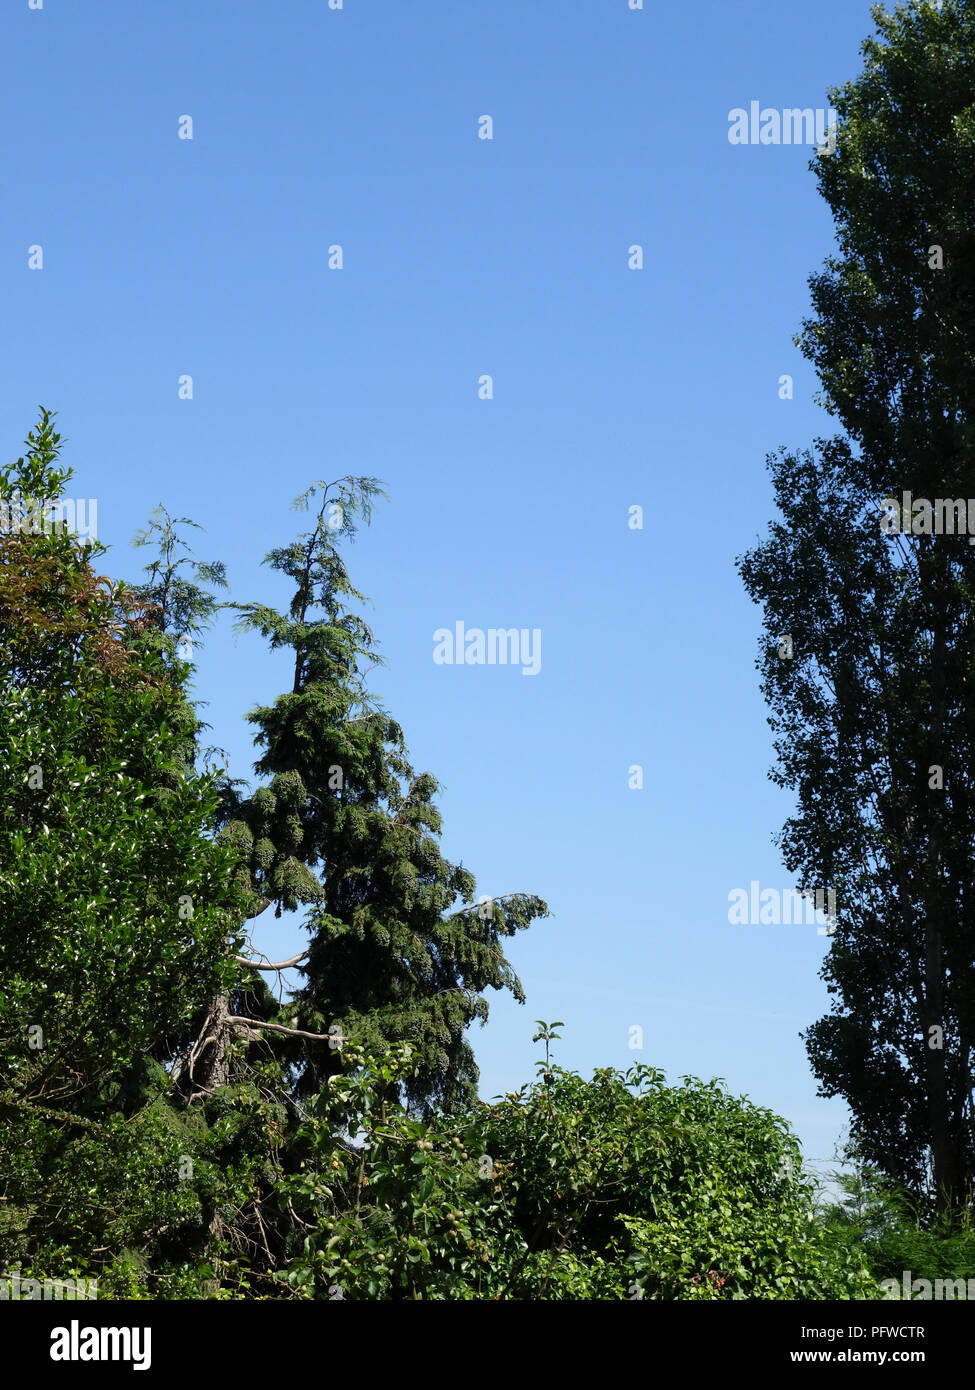 Sky scene on a summers day in the South of France. Perfect blue sky showing through gaps in trees. - Stock Image